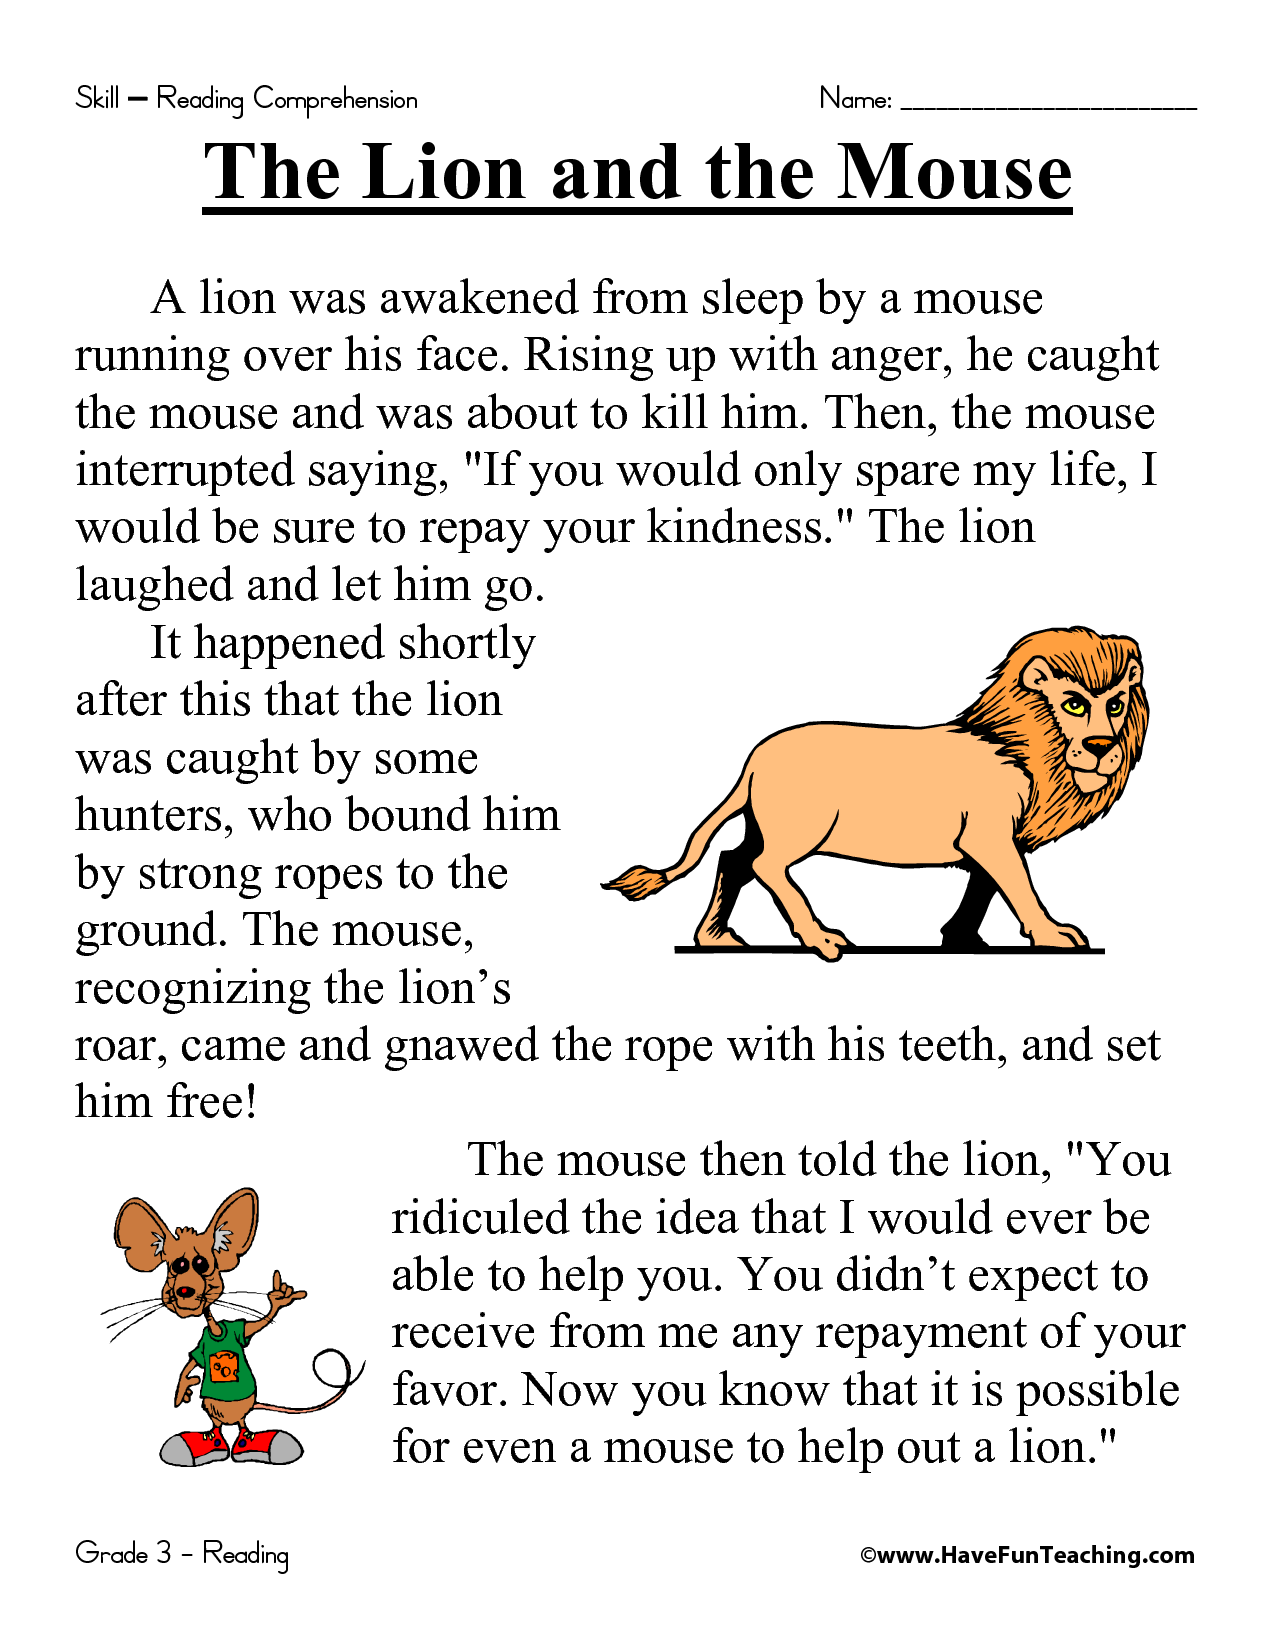 worksheet Reading Comprehension For 3rd Grade reading comprehension stories classroom ideas pinterest 3rd first grade worksheets the lion and mouse worksheet